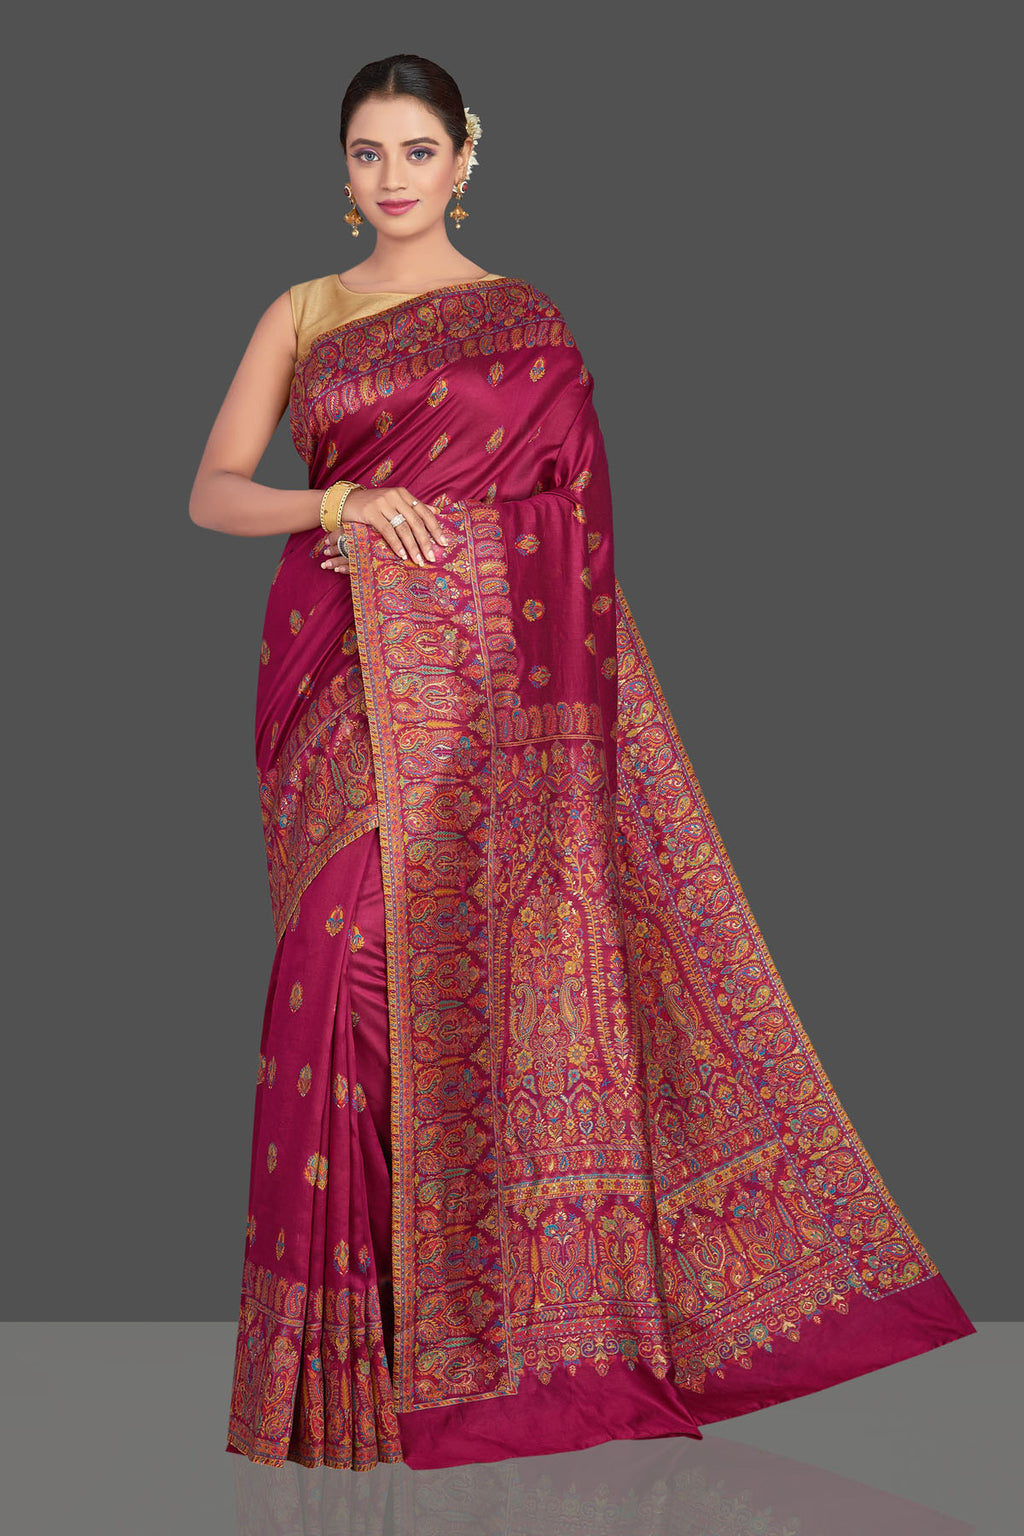 Shop beautiful magenta tussar silk sari online in USA with Kani embroidery. Make your presence felt on special occasions in beautiful embroidered sarees, handwoven sarees, pure silk saris, tussar sarees from Pure Elegance Indian saree store in USA.-full view